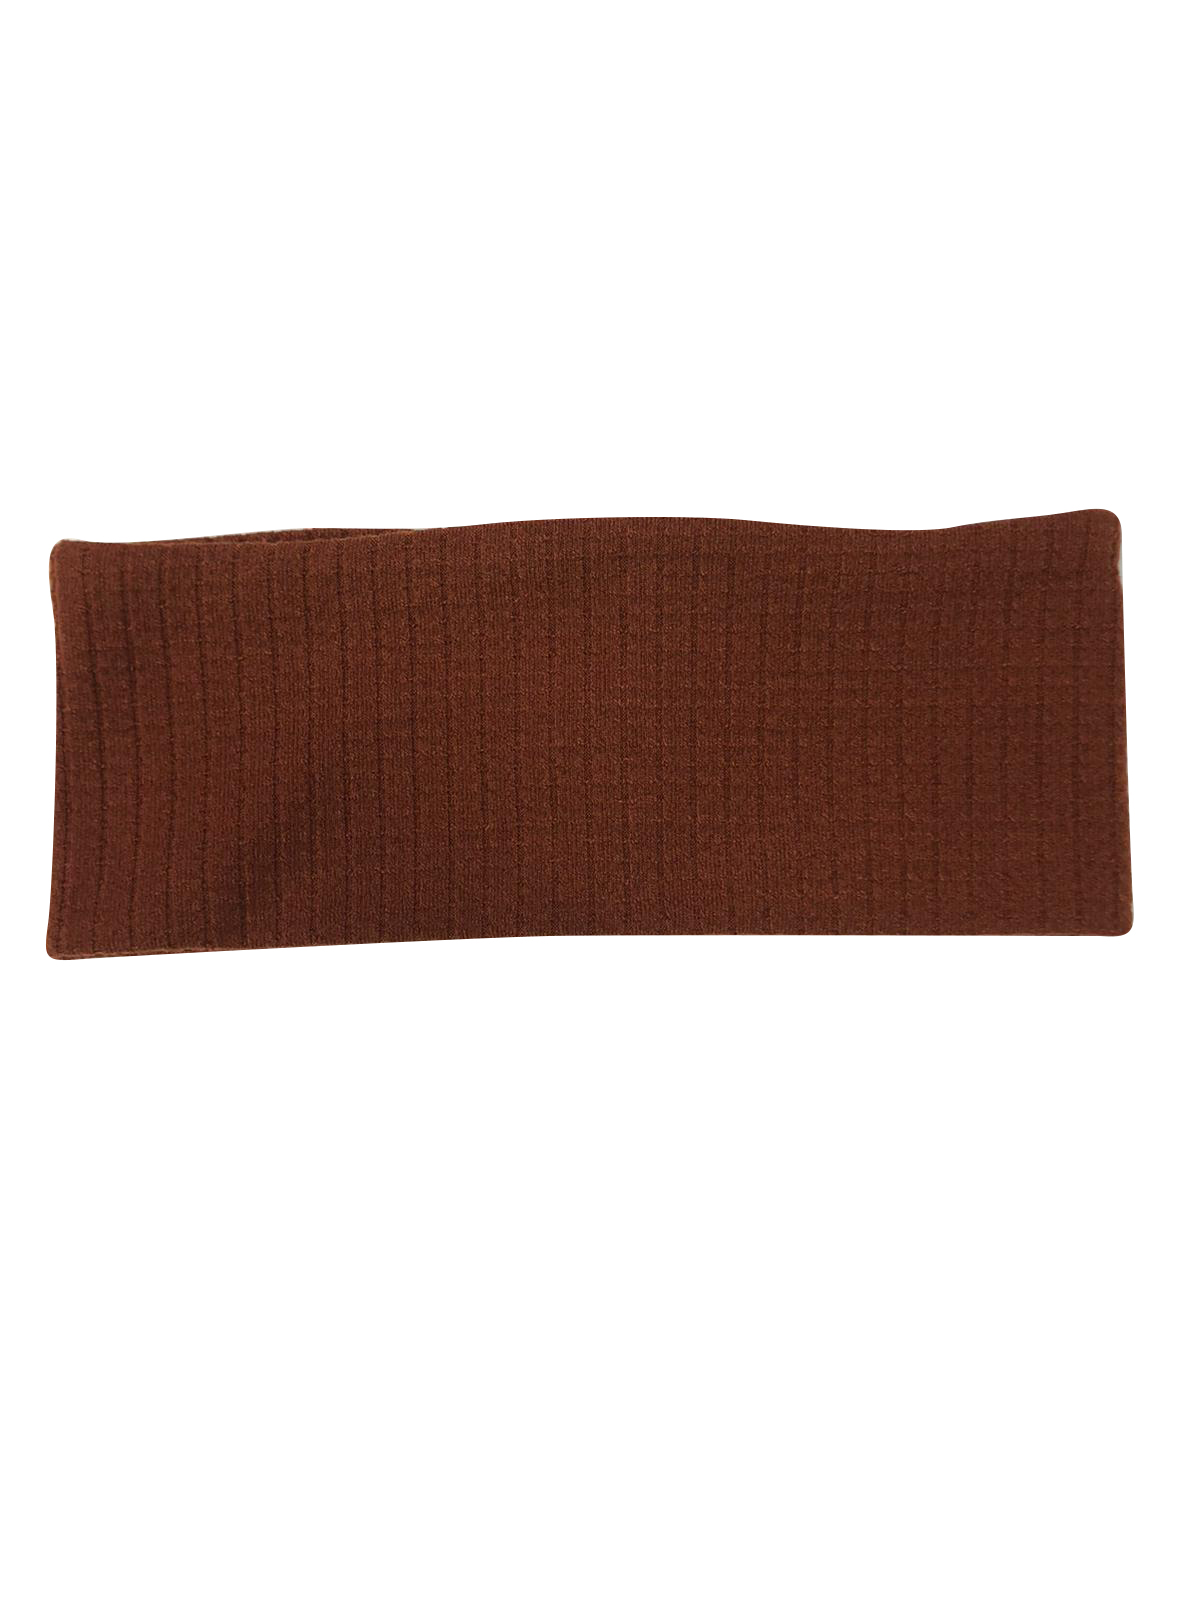 Ribbed Squares Headwrap